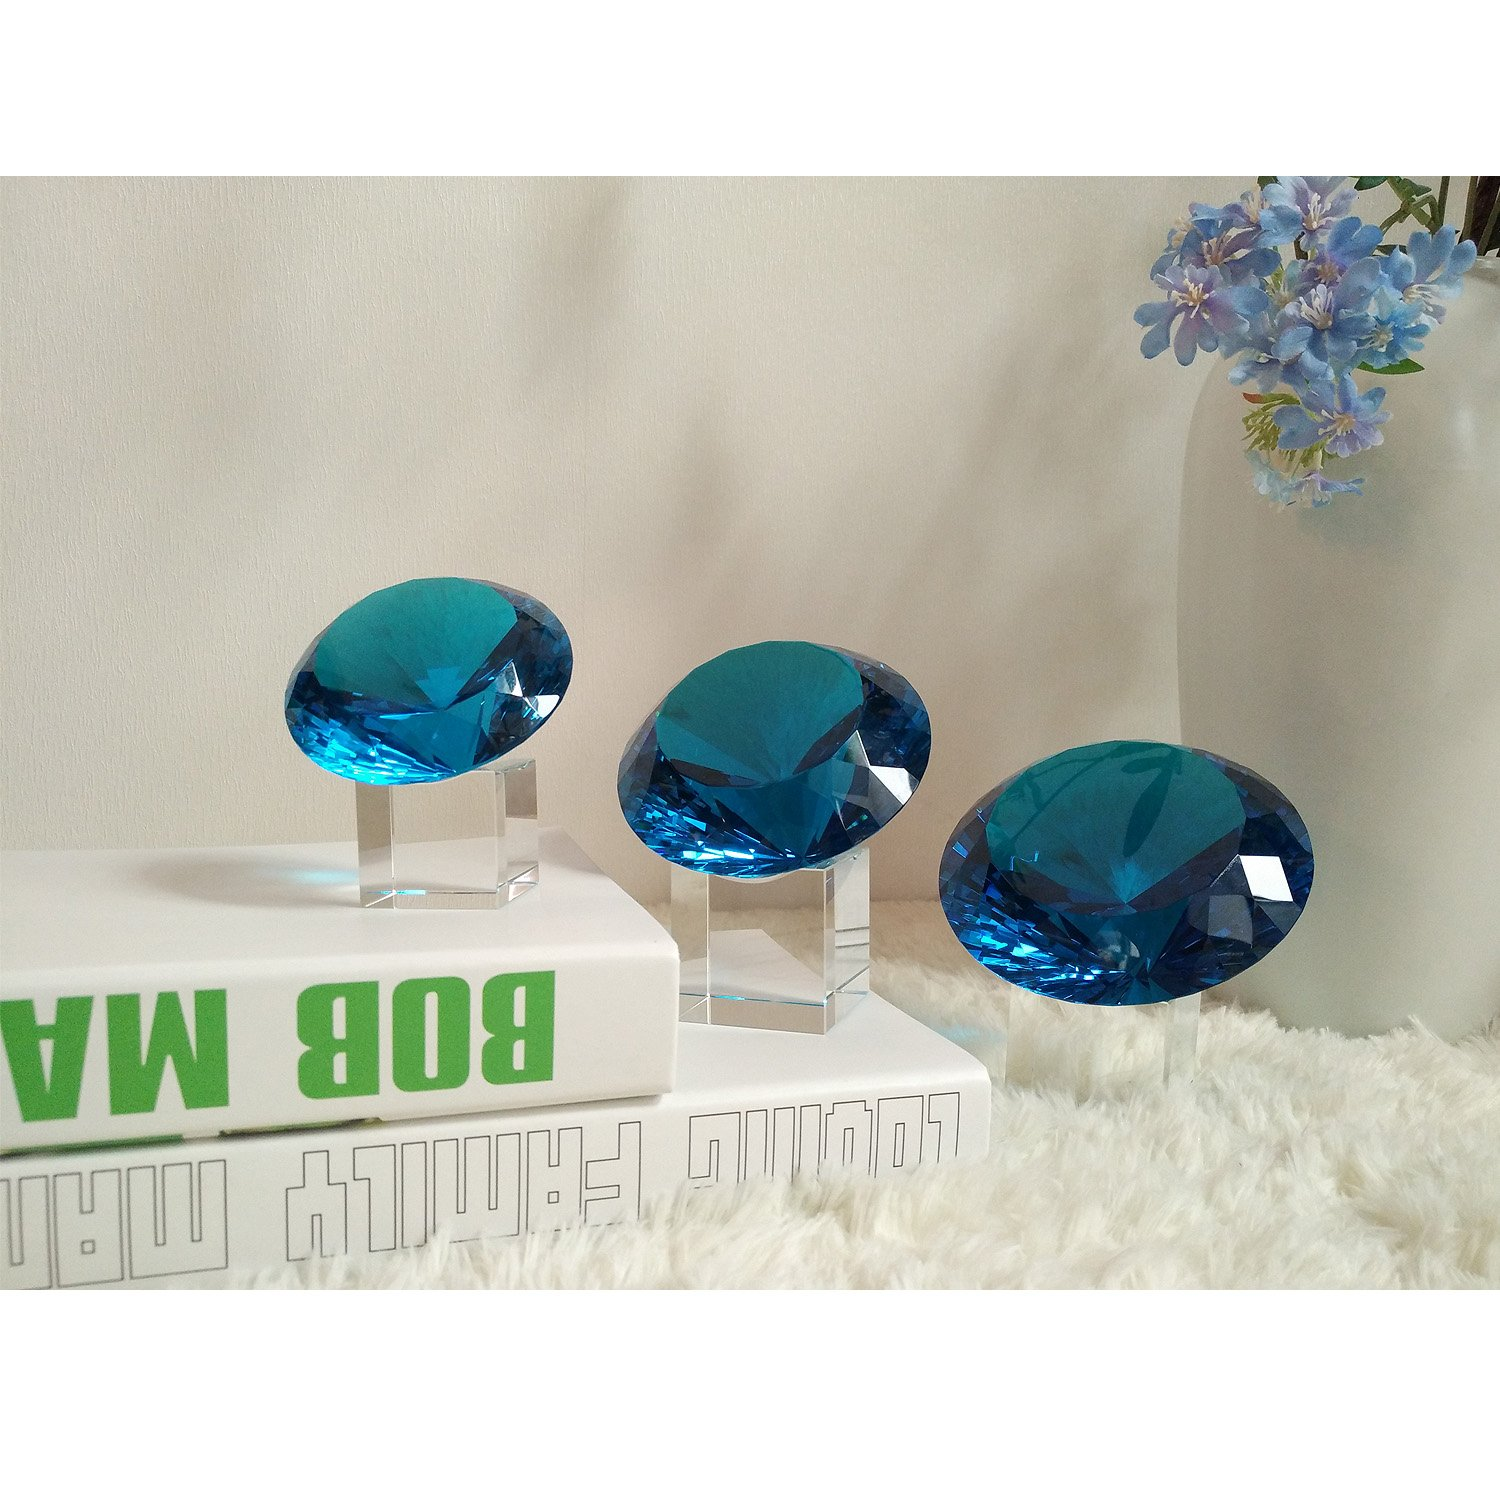 BRLIGHTING Cobalt Blue crystal Diamond Paperweight on stand for Office, Lovely Gift for Friends and Family (D120mm / 4.73'') by BRLIGHTING (Image #7)